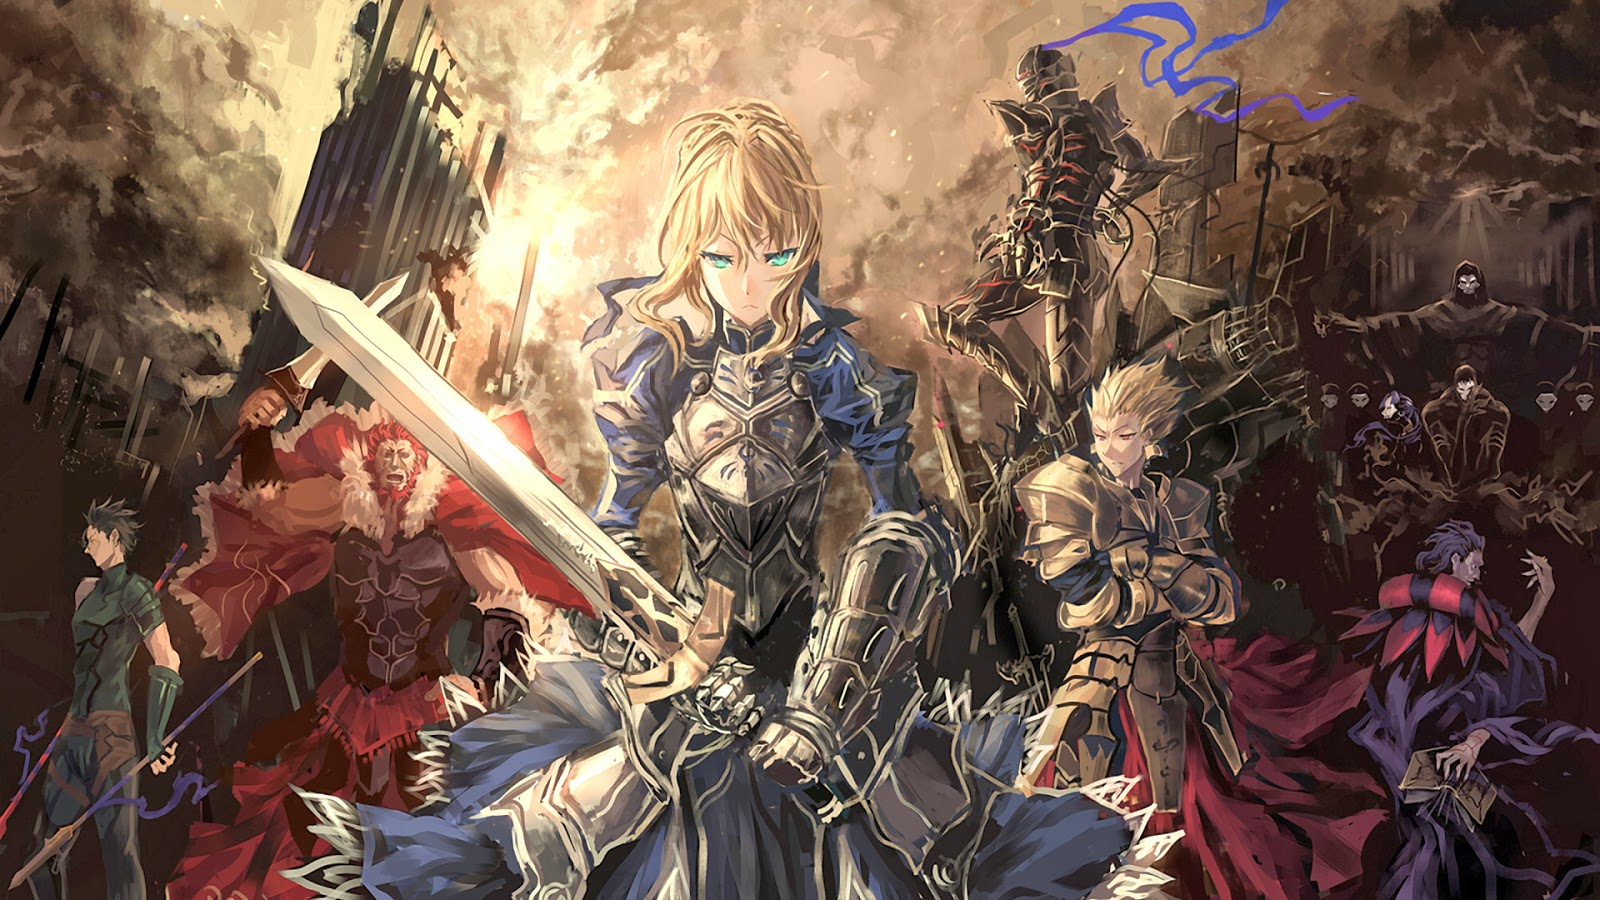 fate stay night wallpaper anime saber gilgames armor knight sword